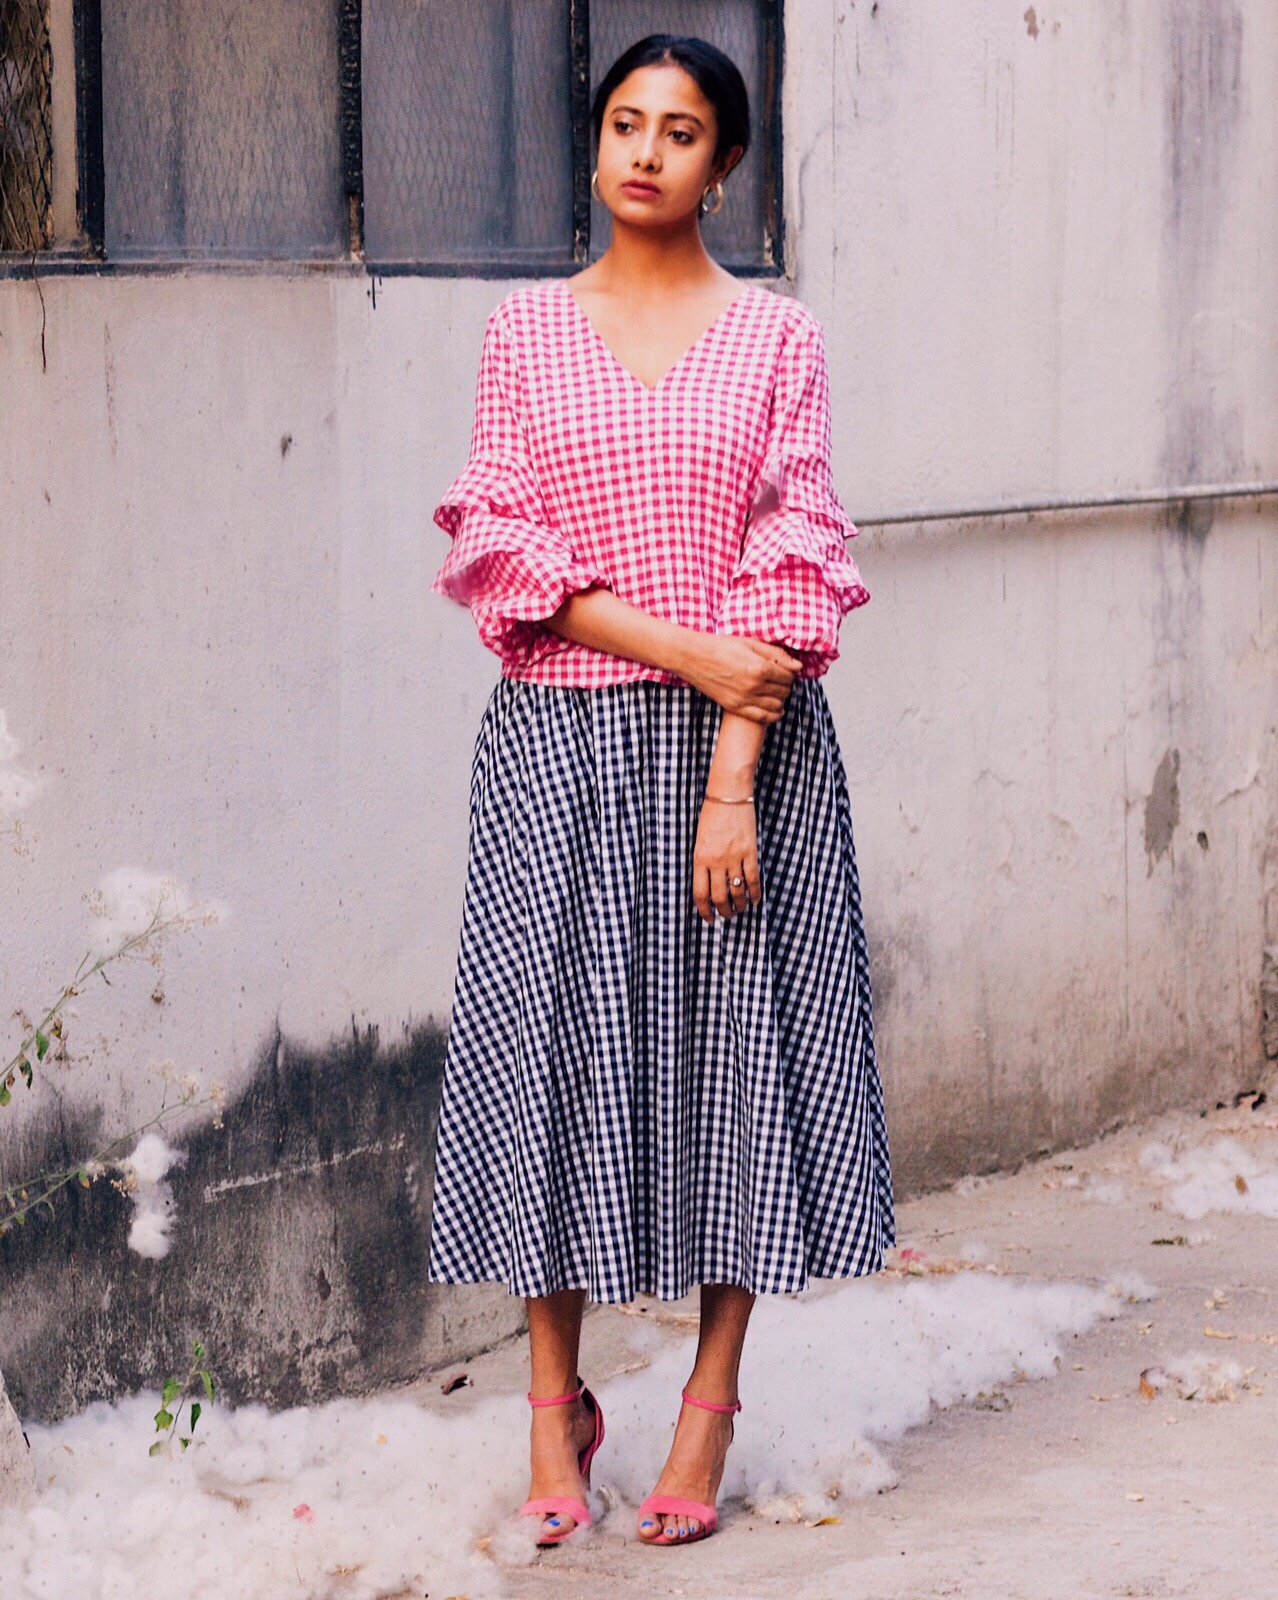 gingham, gingham trend, style gingham, trends 2017, gingham midi skirt, gingham top style, all gingham outfit, how and when to buy trends, when to buy trends, tips an tricks to buy trends, indian blog, indian blogger, top indian blog, indian luxury blog, uk blog, british blog, london blog, delhi blogger, street style, spring summer 2017, spring summer lookbook, wear trends, how to, how to style, effortless chic, parisian style, how to dress, style tips, street style delhi,